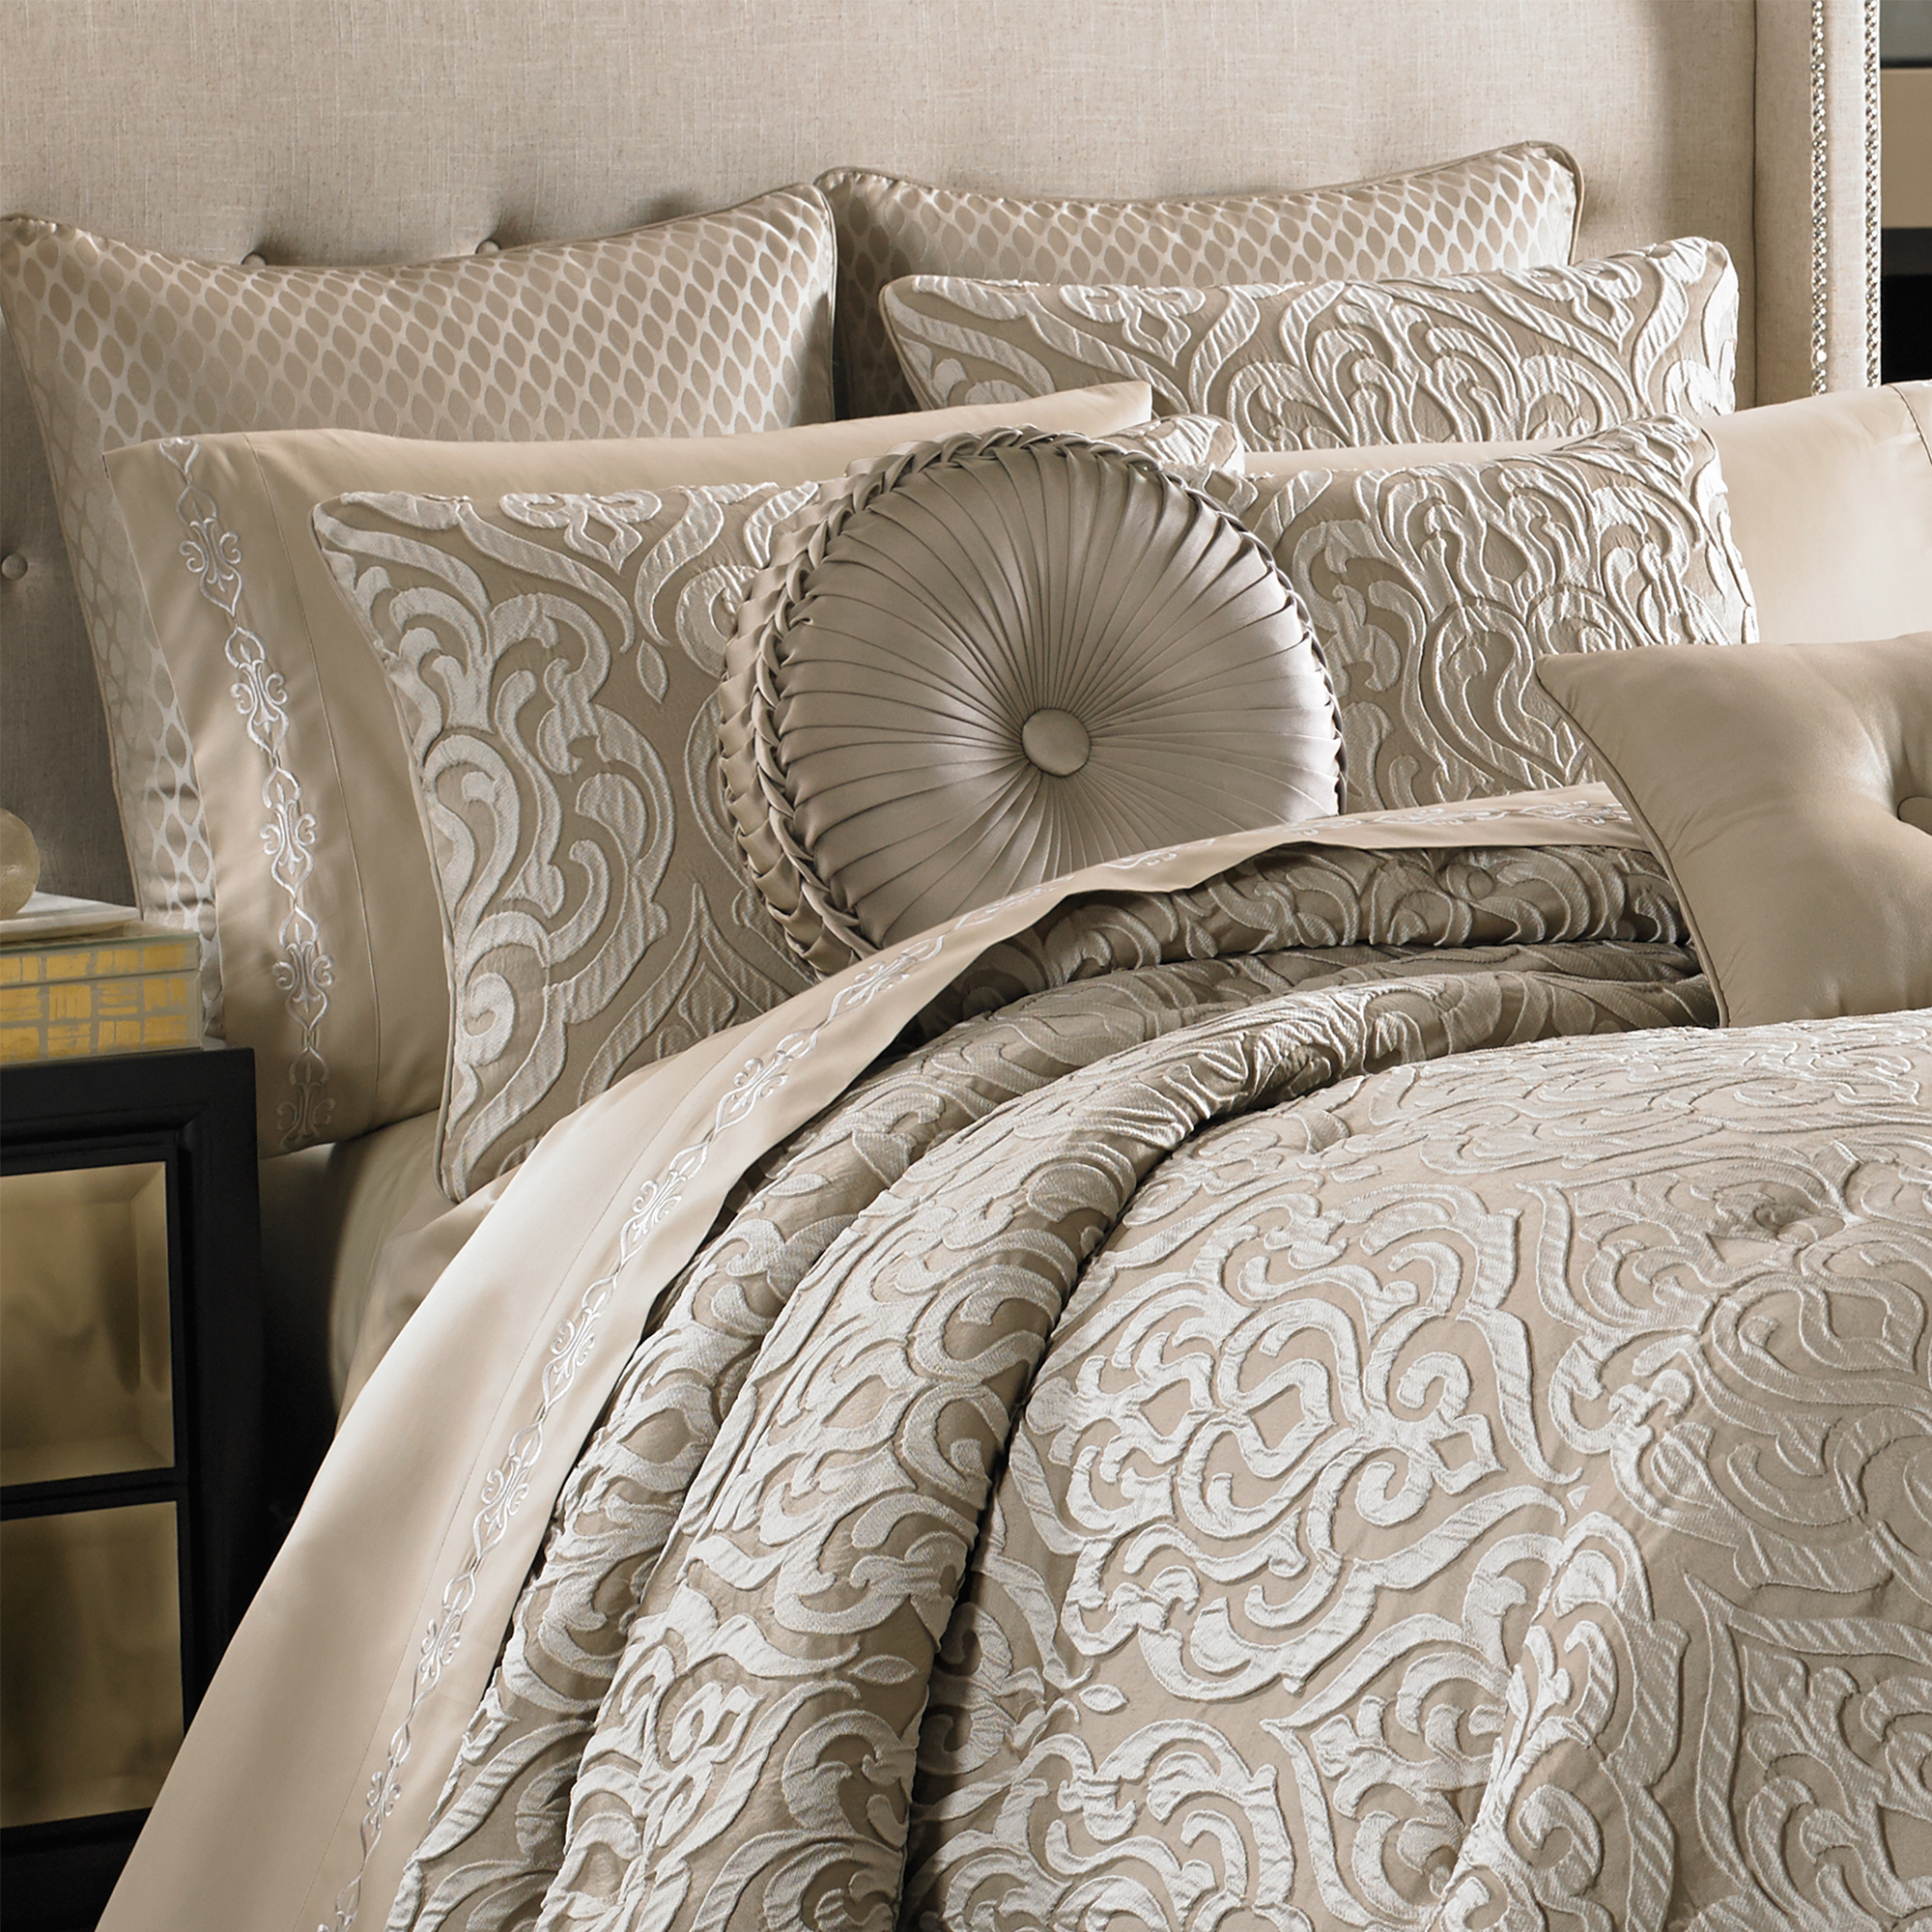 Astoria Sand Queen 4 Piece Comforter Set